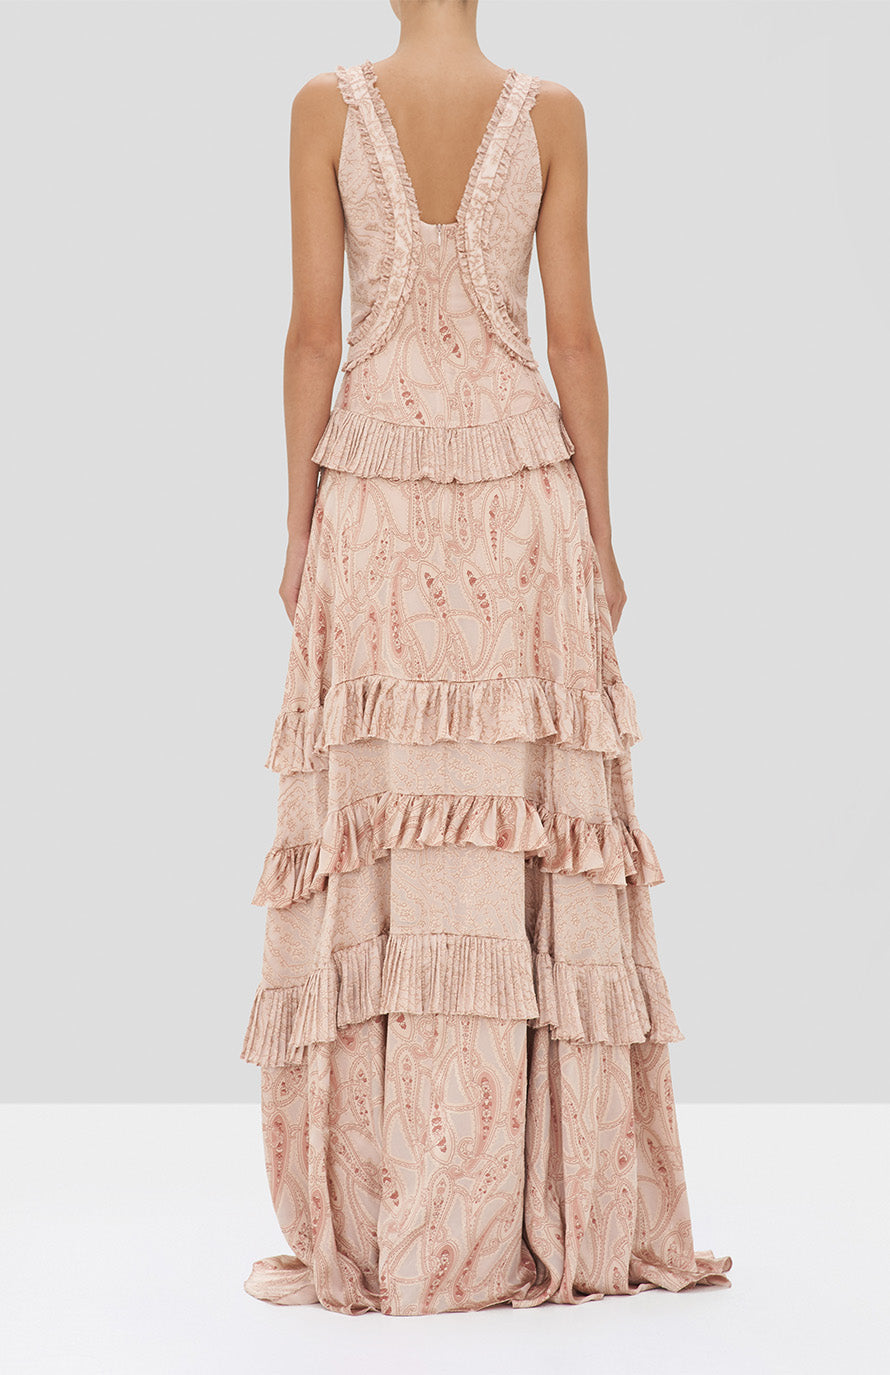 Alexis Rafaela Dress in Blush Paisley from the Holiday 2019 Ready To Wear Collection - Rear View